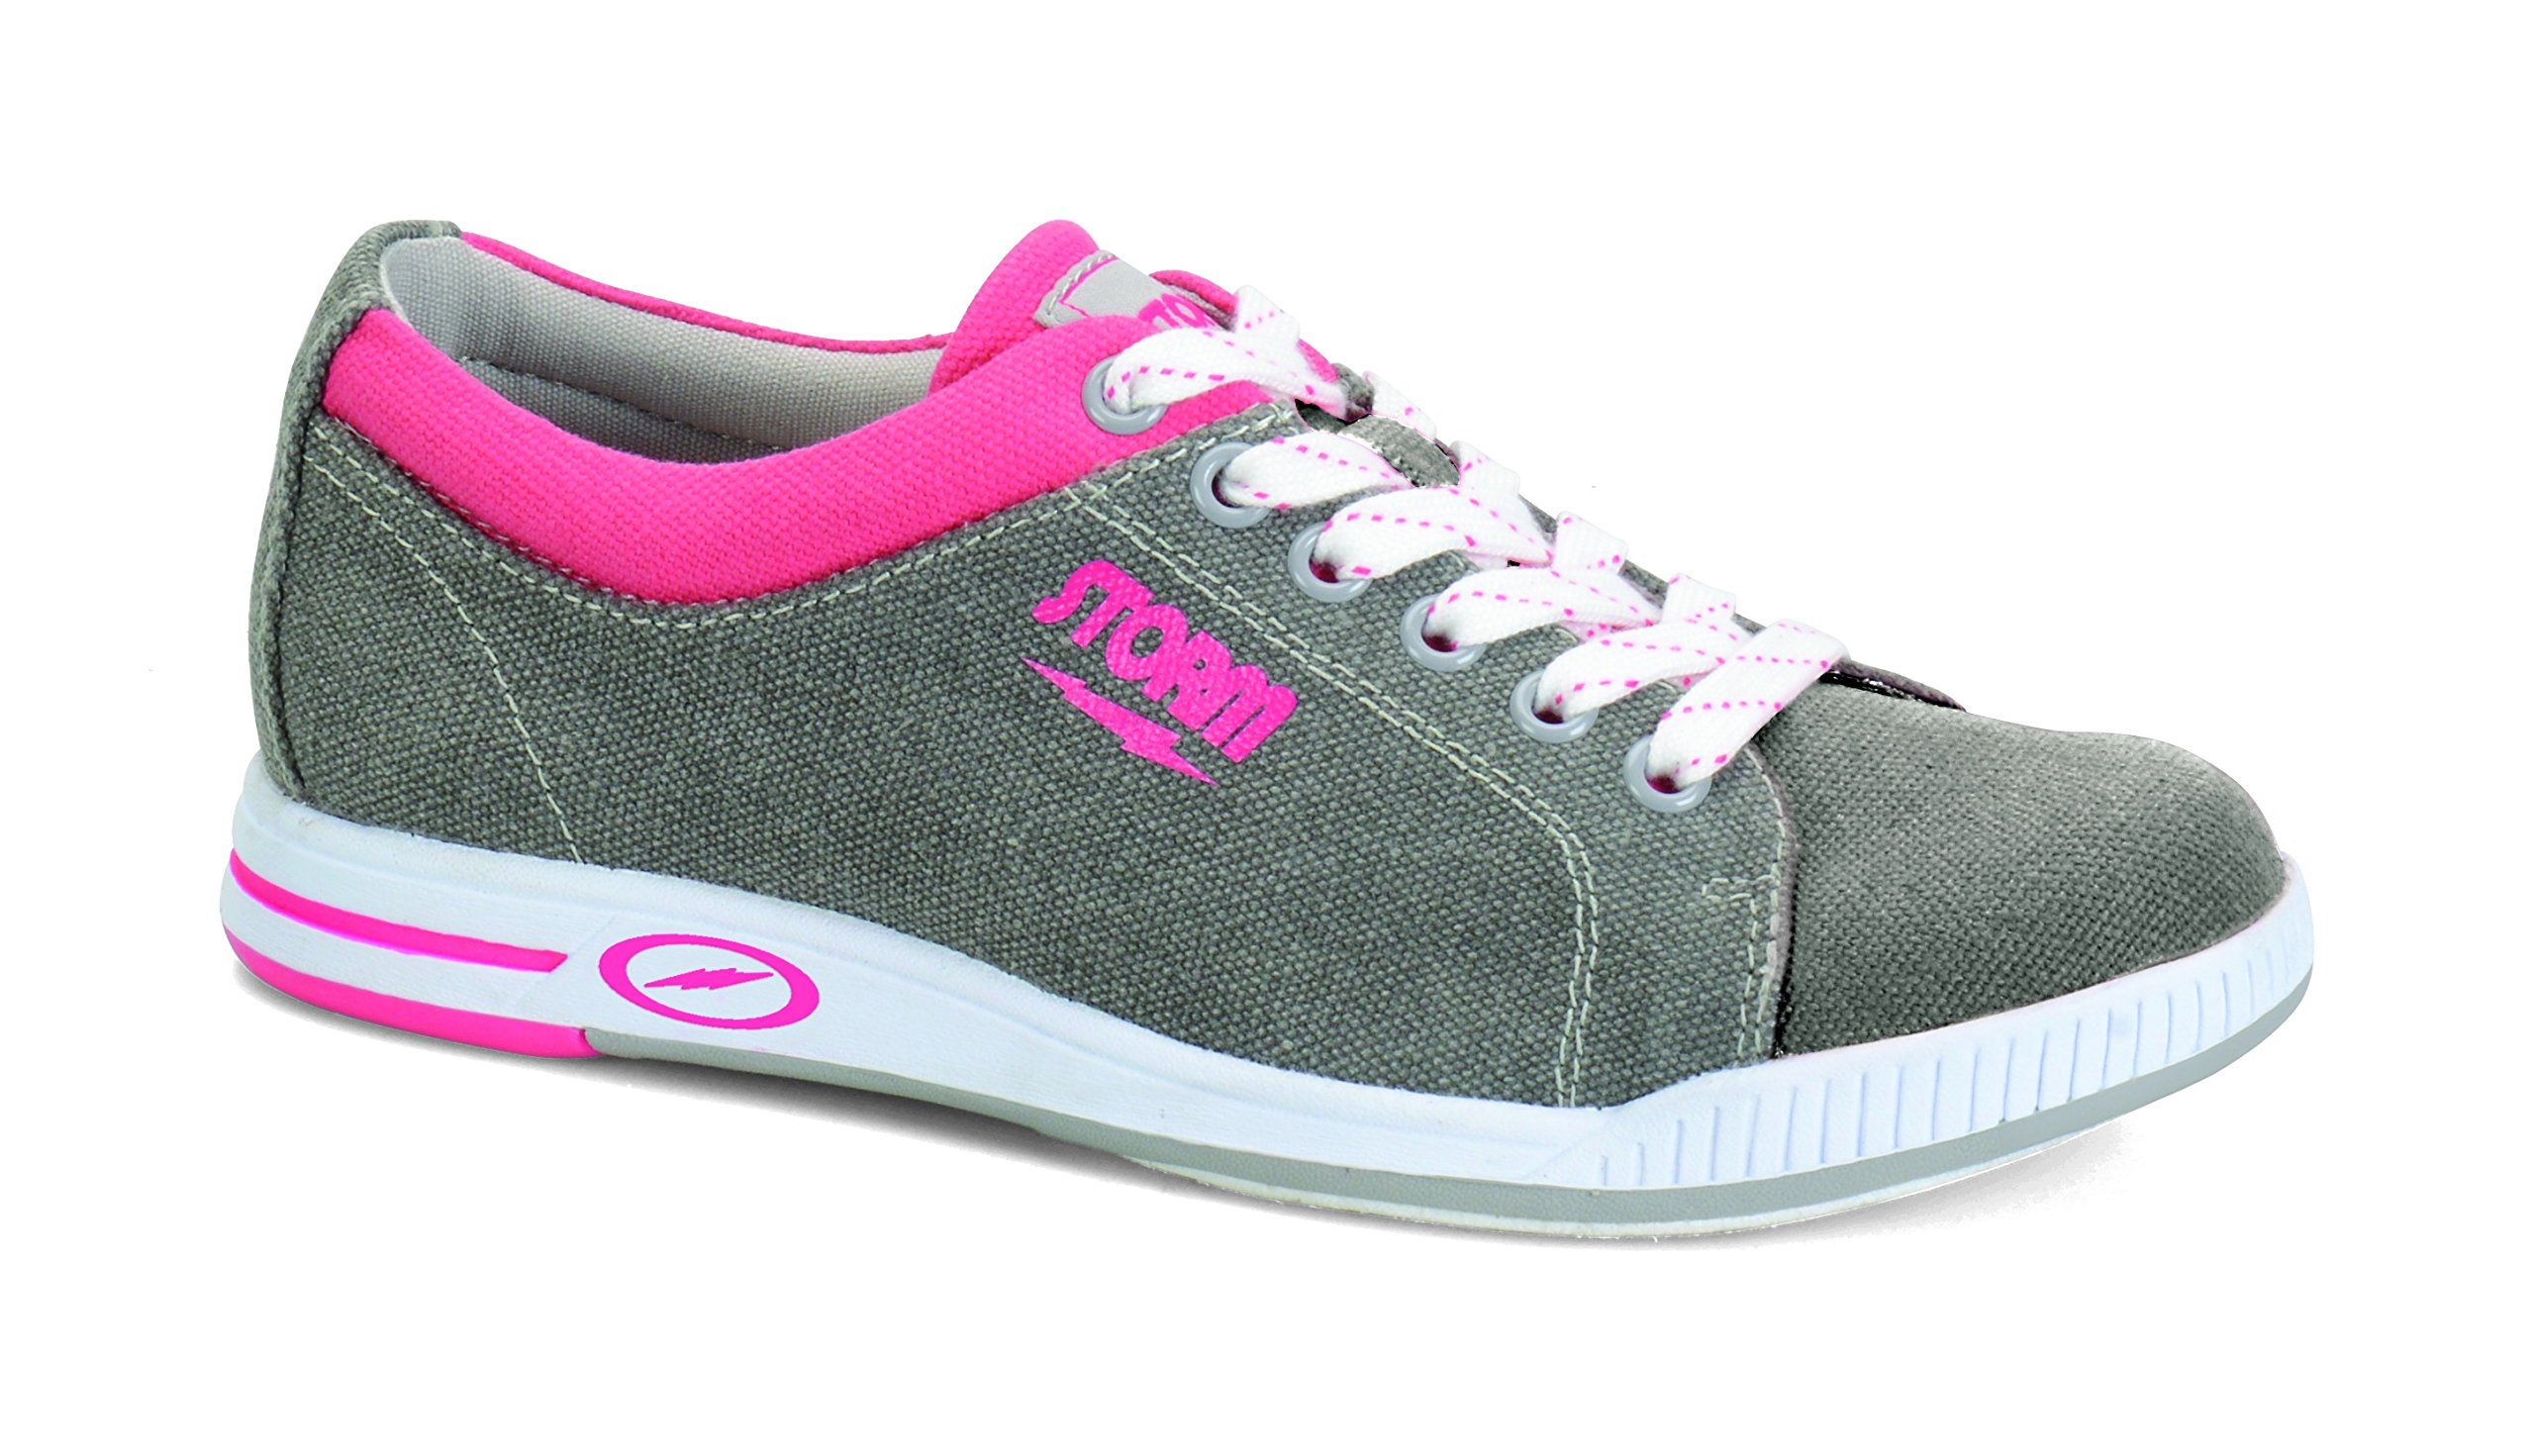 Storm Meadow Bowling Shoes, Grey/Pink, 11.0 by Storm